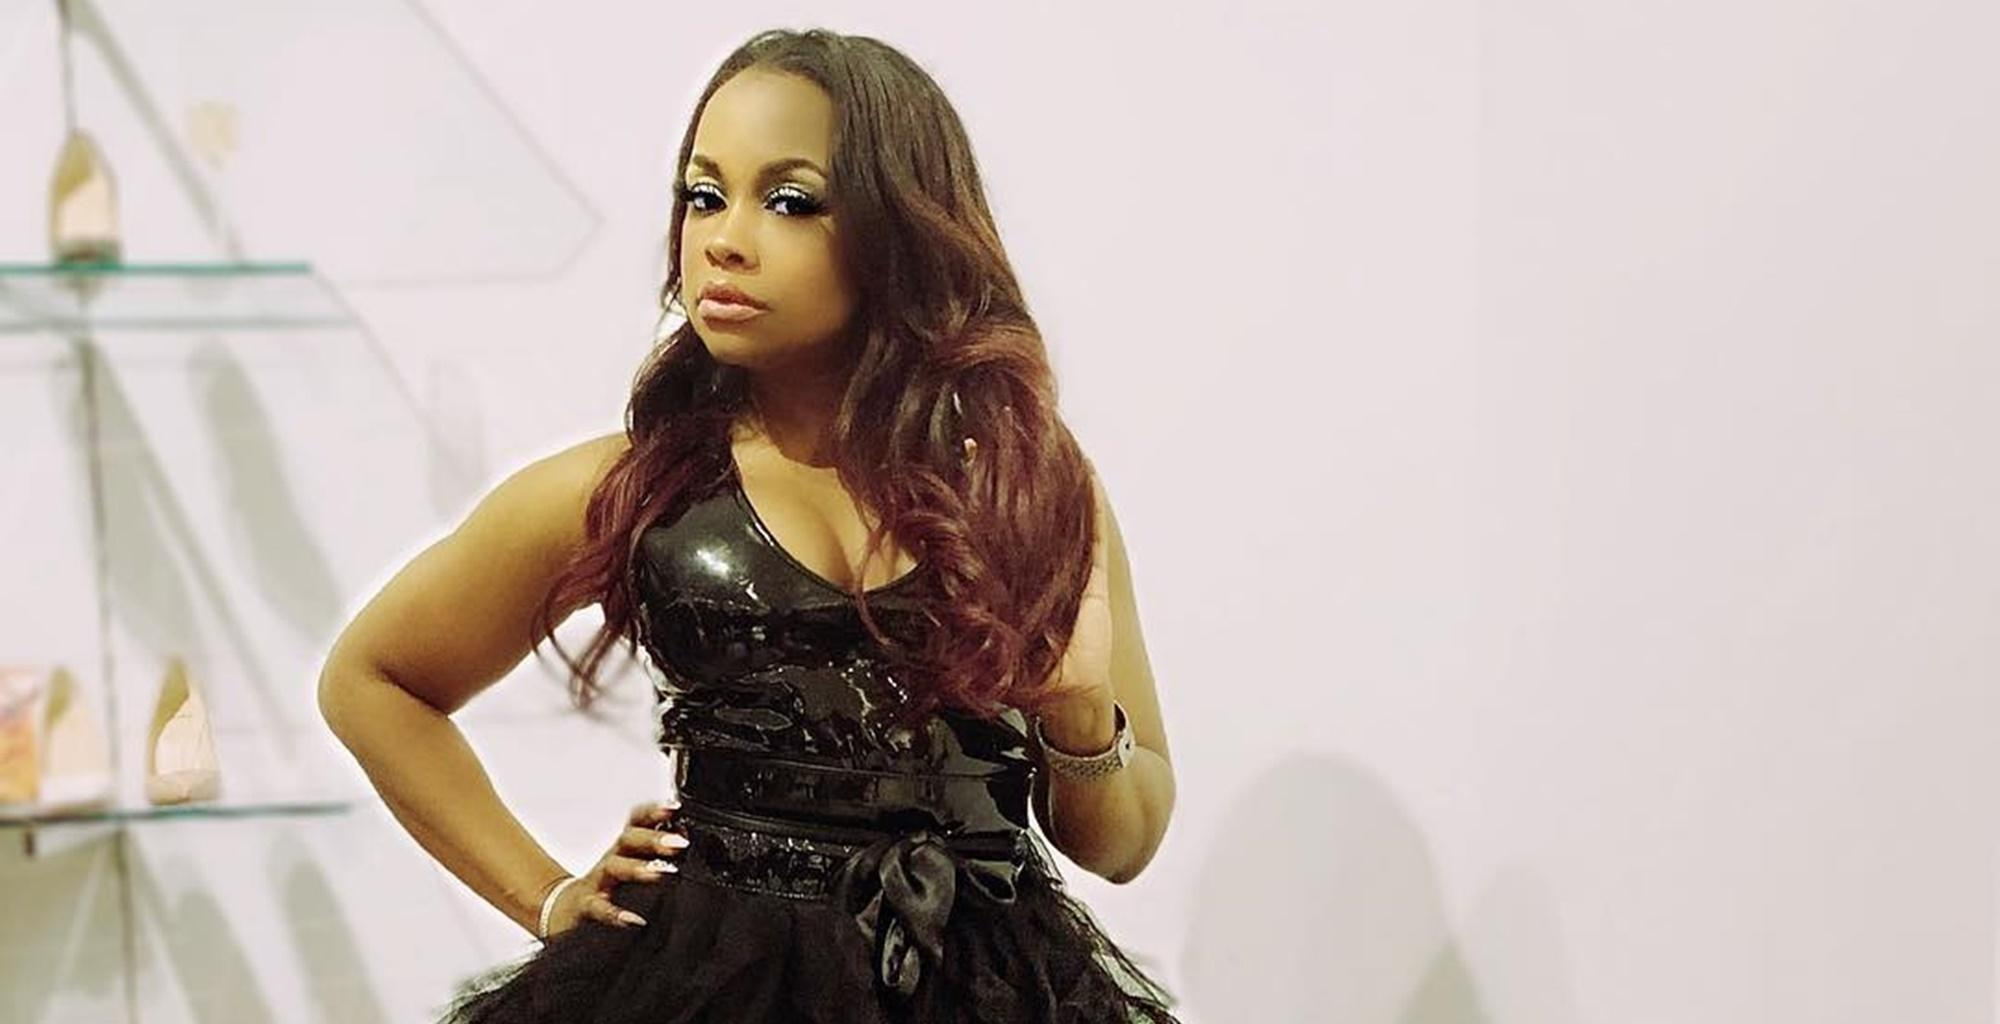 Phaedra Parks Sparks 'RHOA' Return Chatter After Video With Nene Leakes And Andy Cohen